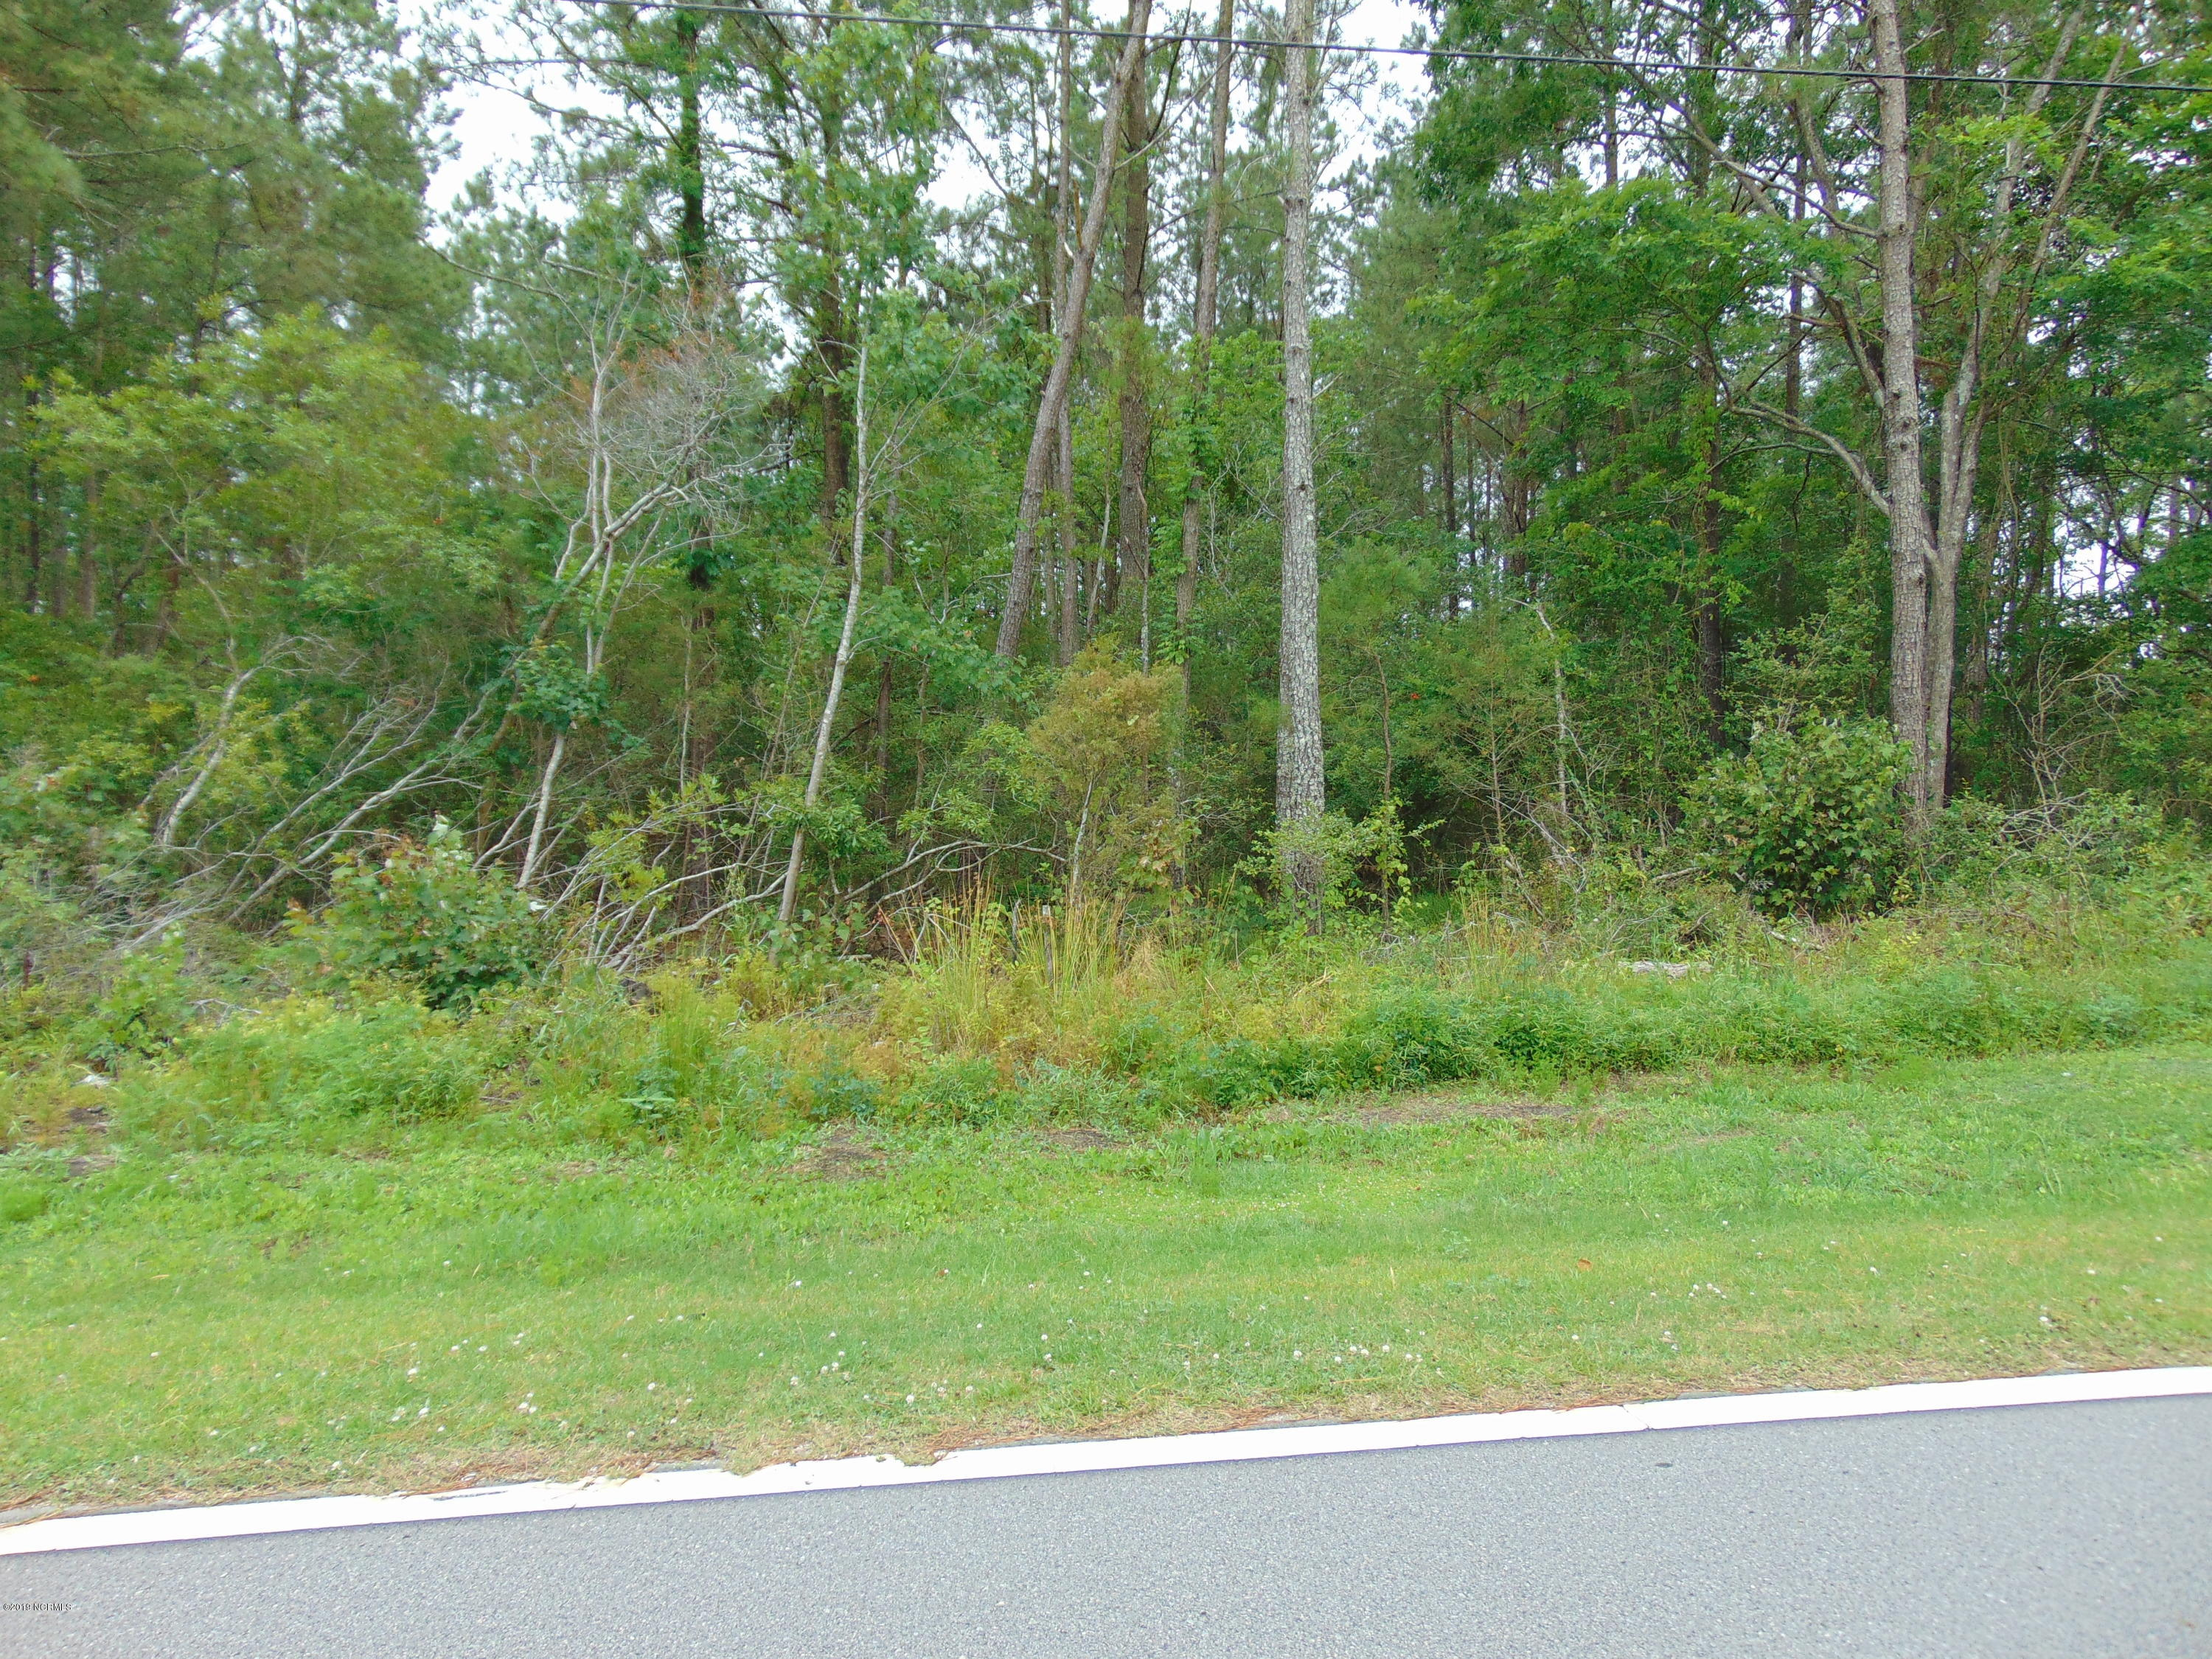 0 Nc 304/33, Hobucken, North Carolina 28537, ,Undeveloped,For sale,Nc 304/33,100173475